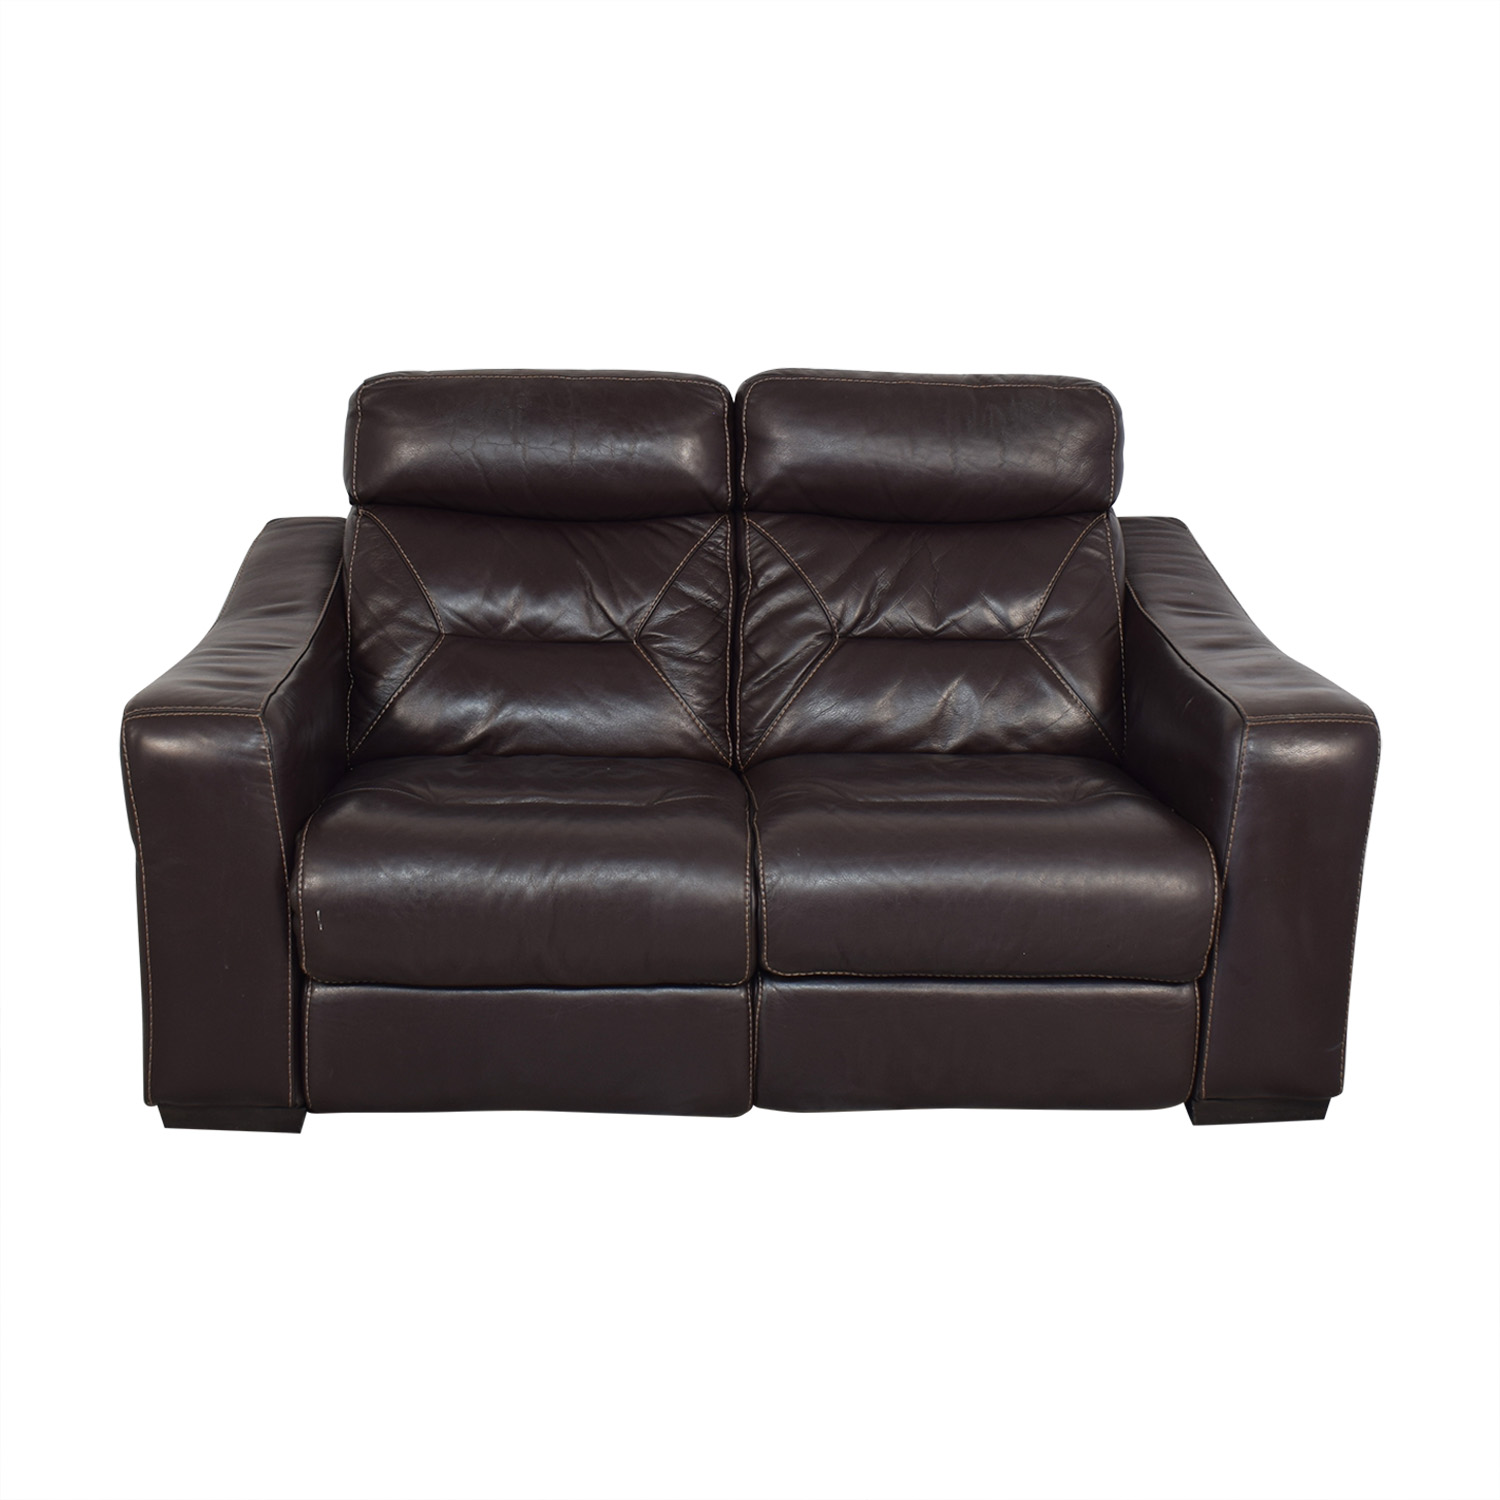 shop Macy's Double Reclining Loveseat Macy's Chairs